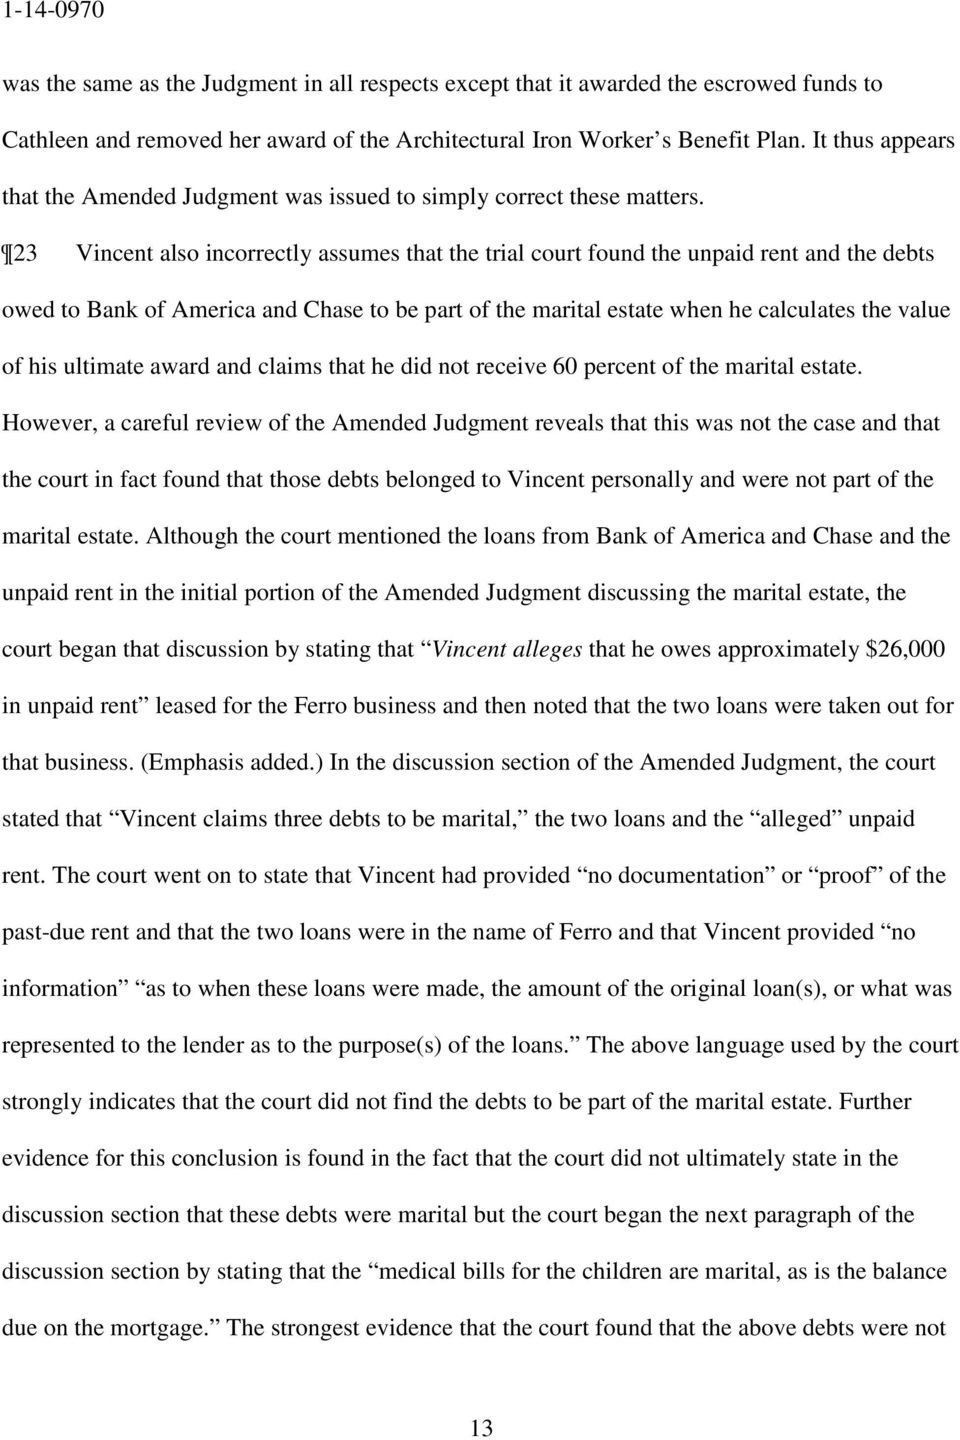 23 Vincent also incorrectly assumes that the trial court found the unpaid rent and the debts owed to Bank of America and Chase to be part of the marital estate when he calculates the value of his